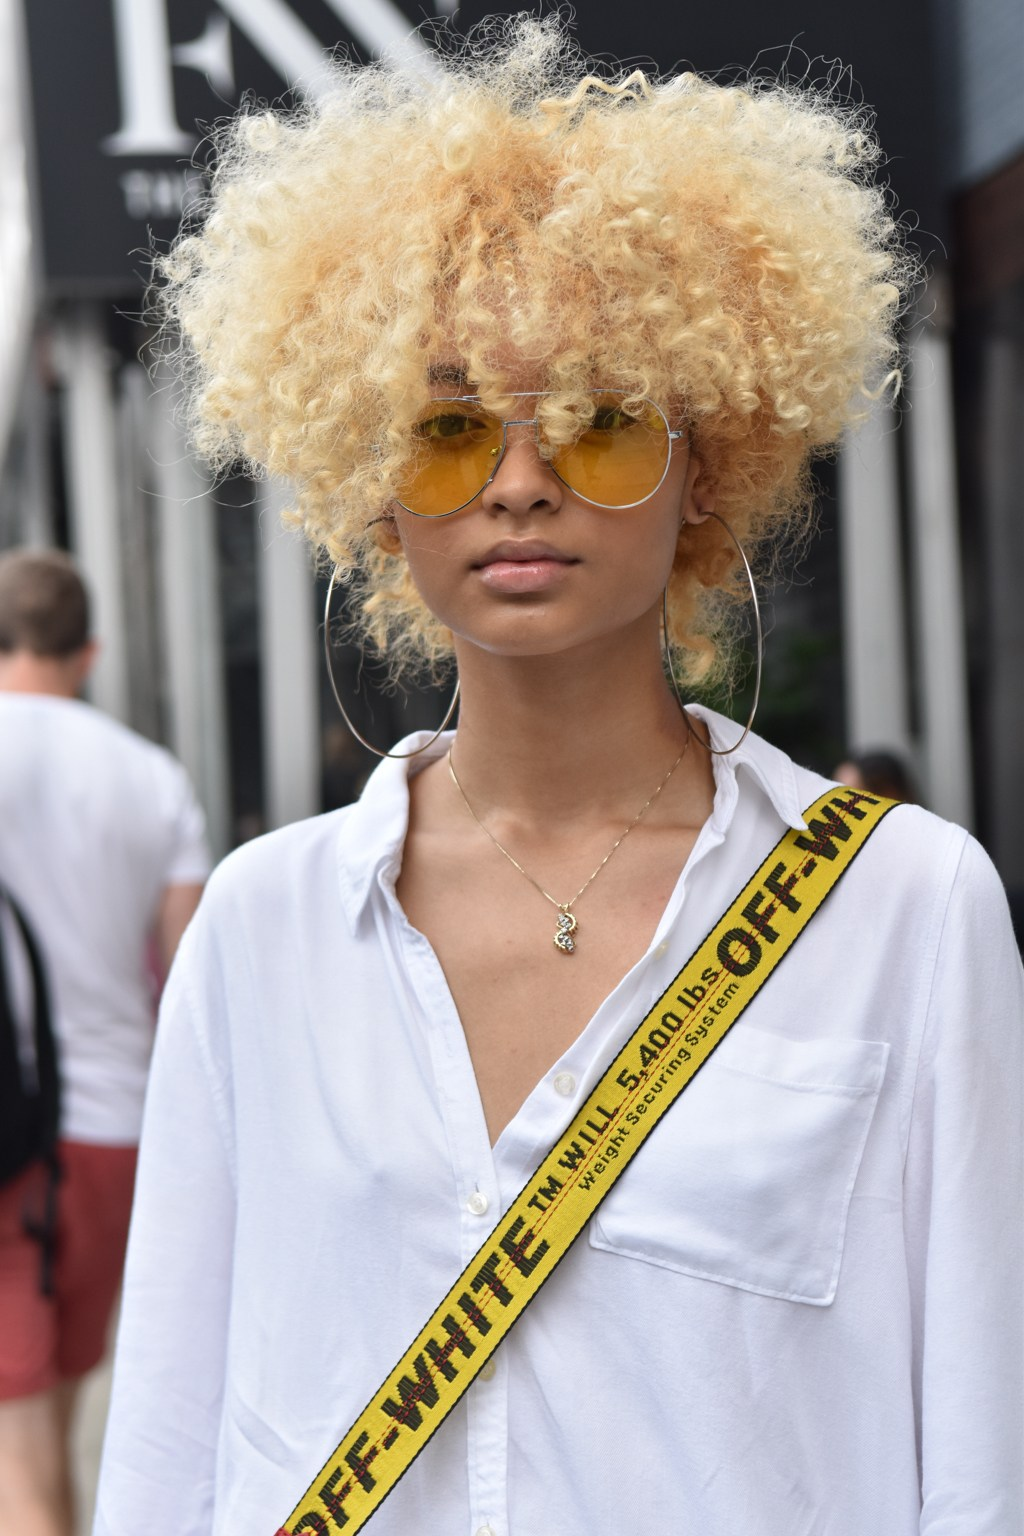 NYFW SS19 street style: Street style shot of a woman with a blonde afro wearing sunglasses and a white shirt